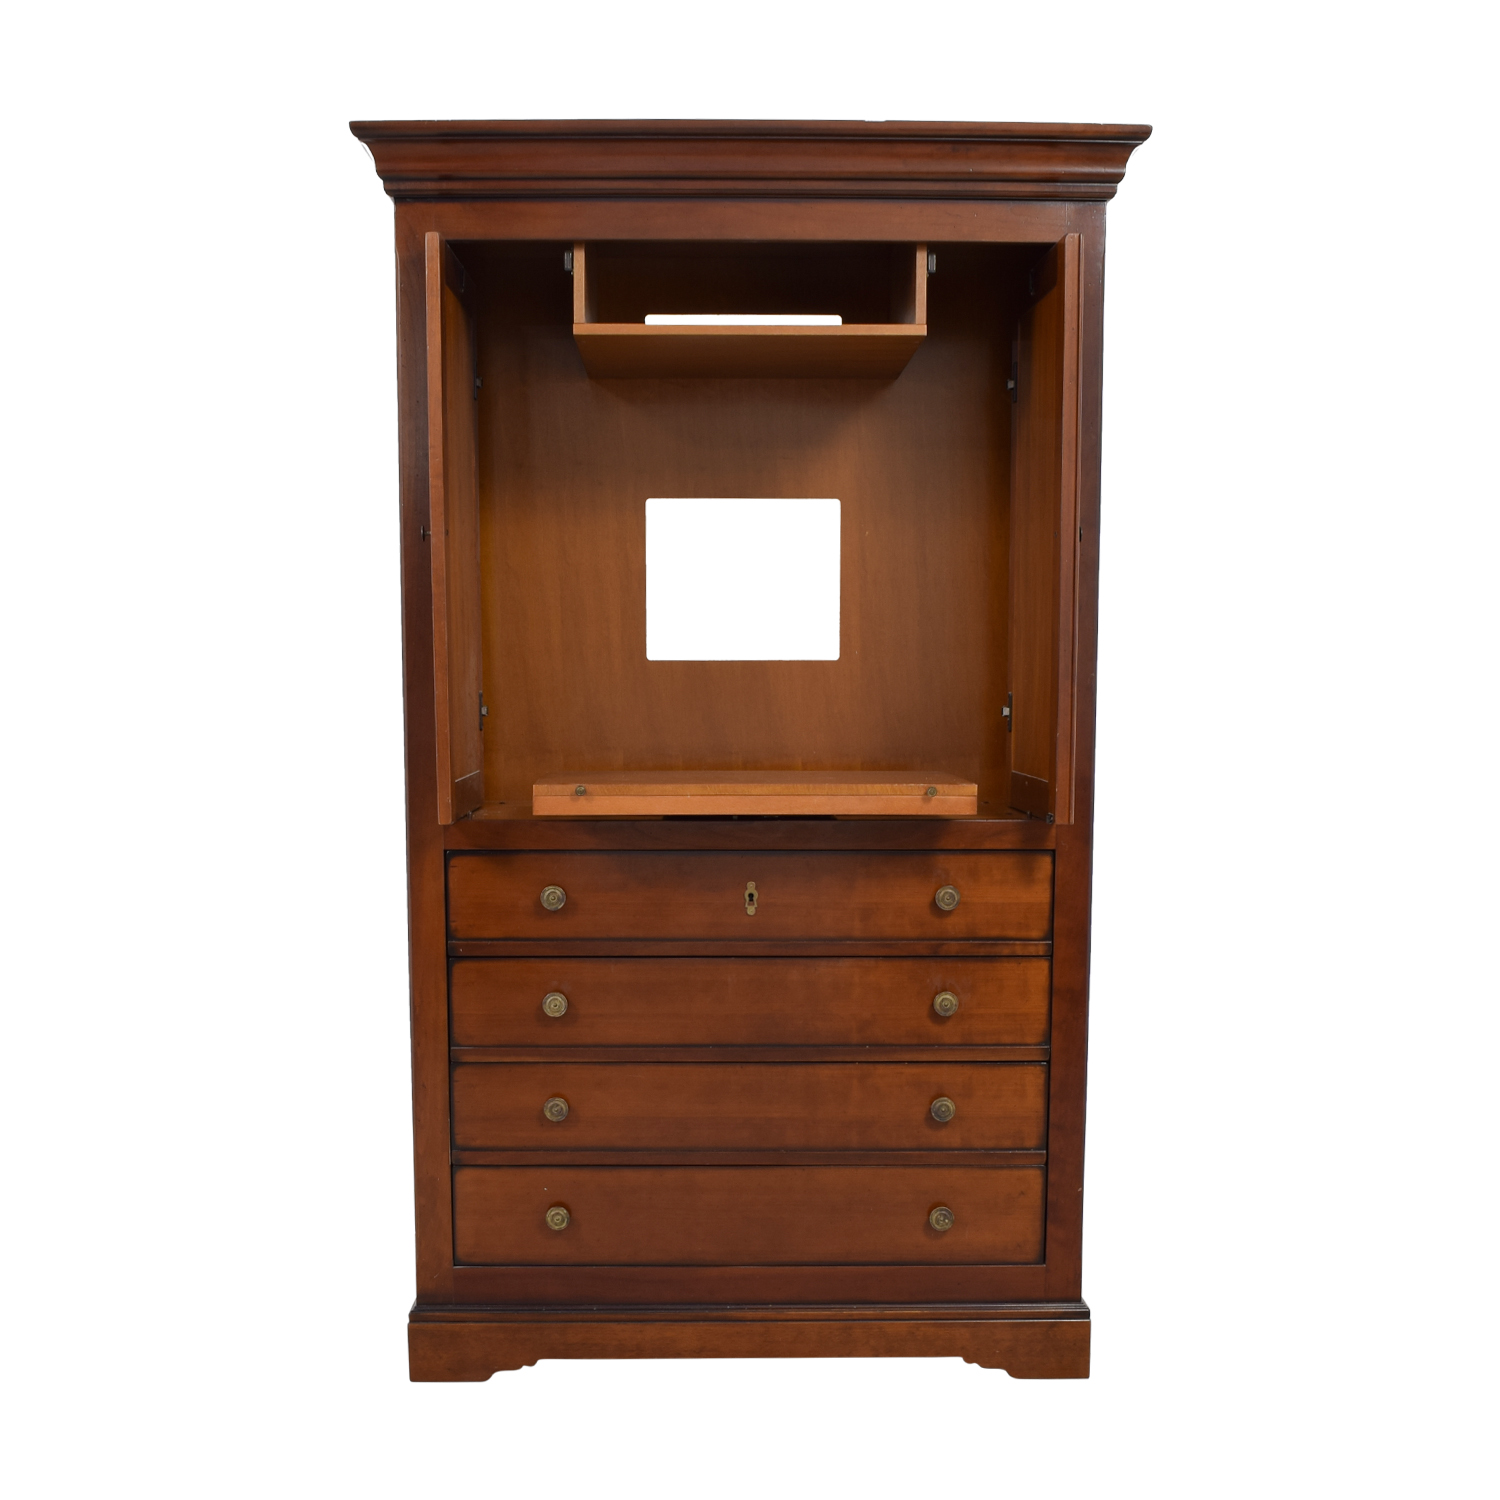 Wardrobes armoires used wardrobes armoires for sale - Grange louis philippe bedroom furniture ...